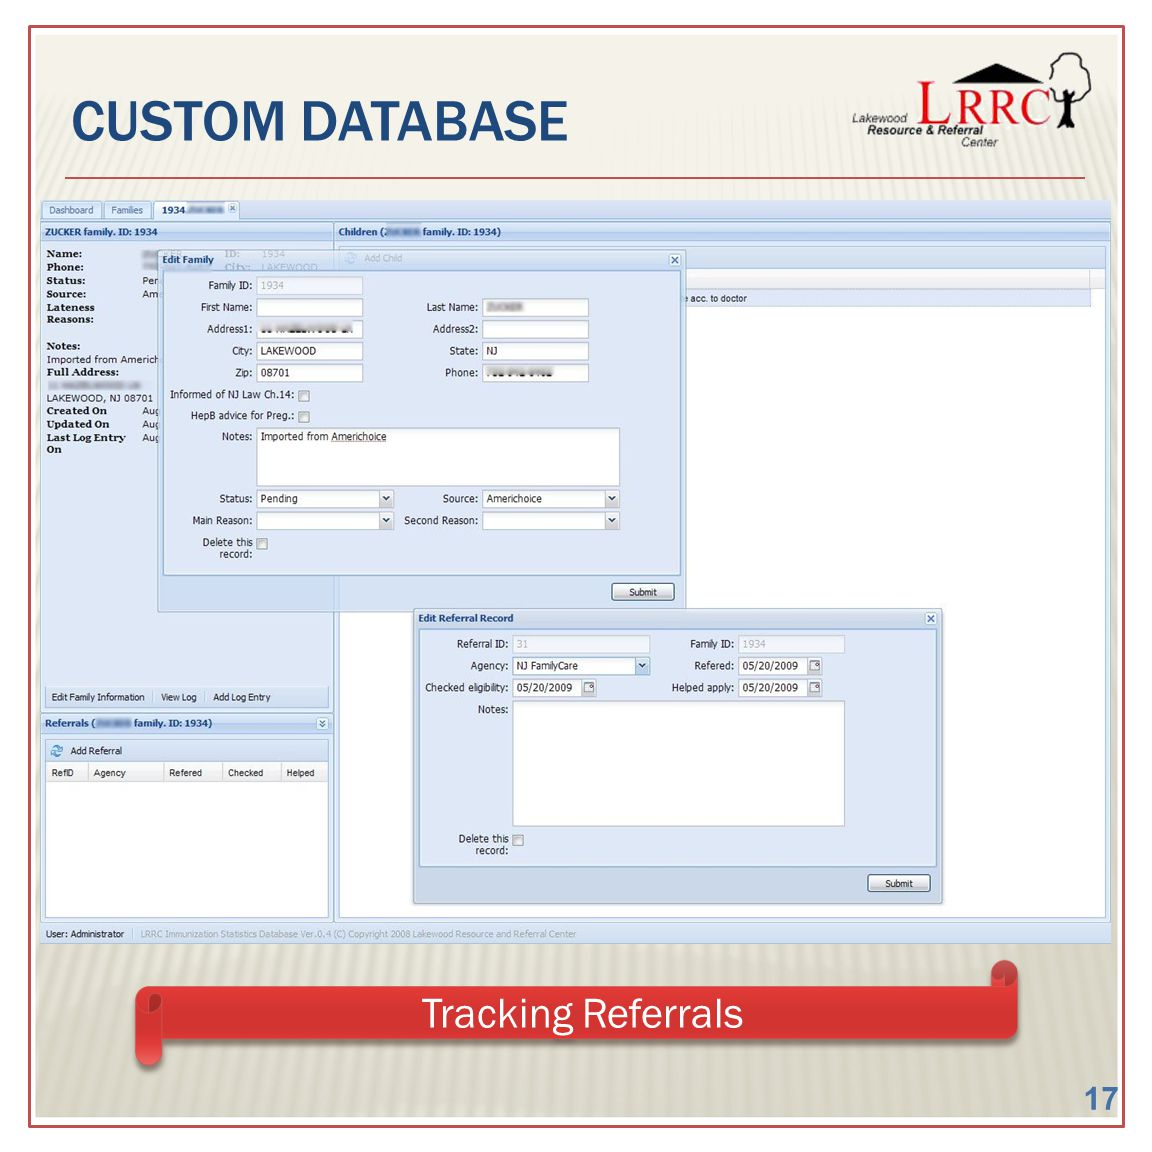 CUSTOM DATABASE Tracking Referrals 17